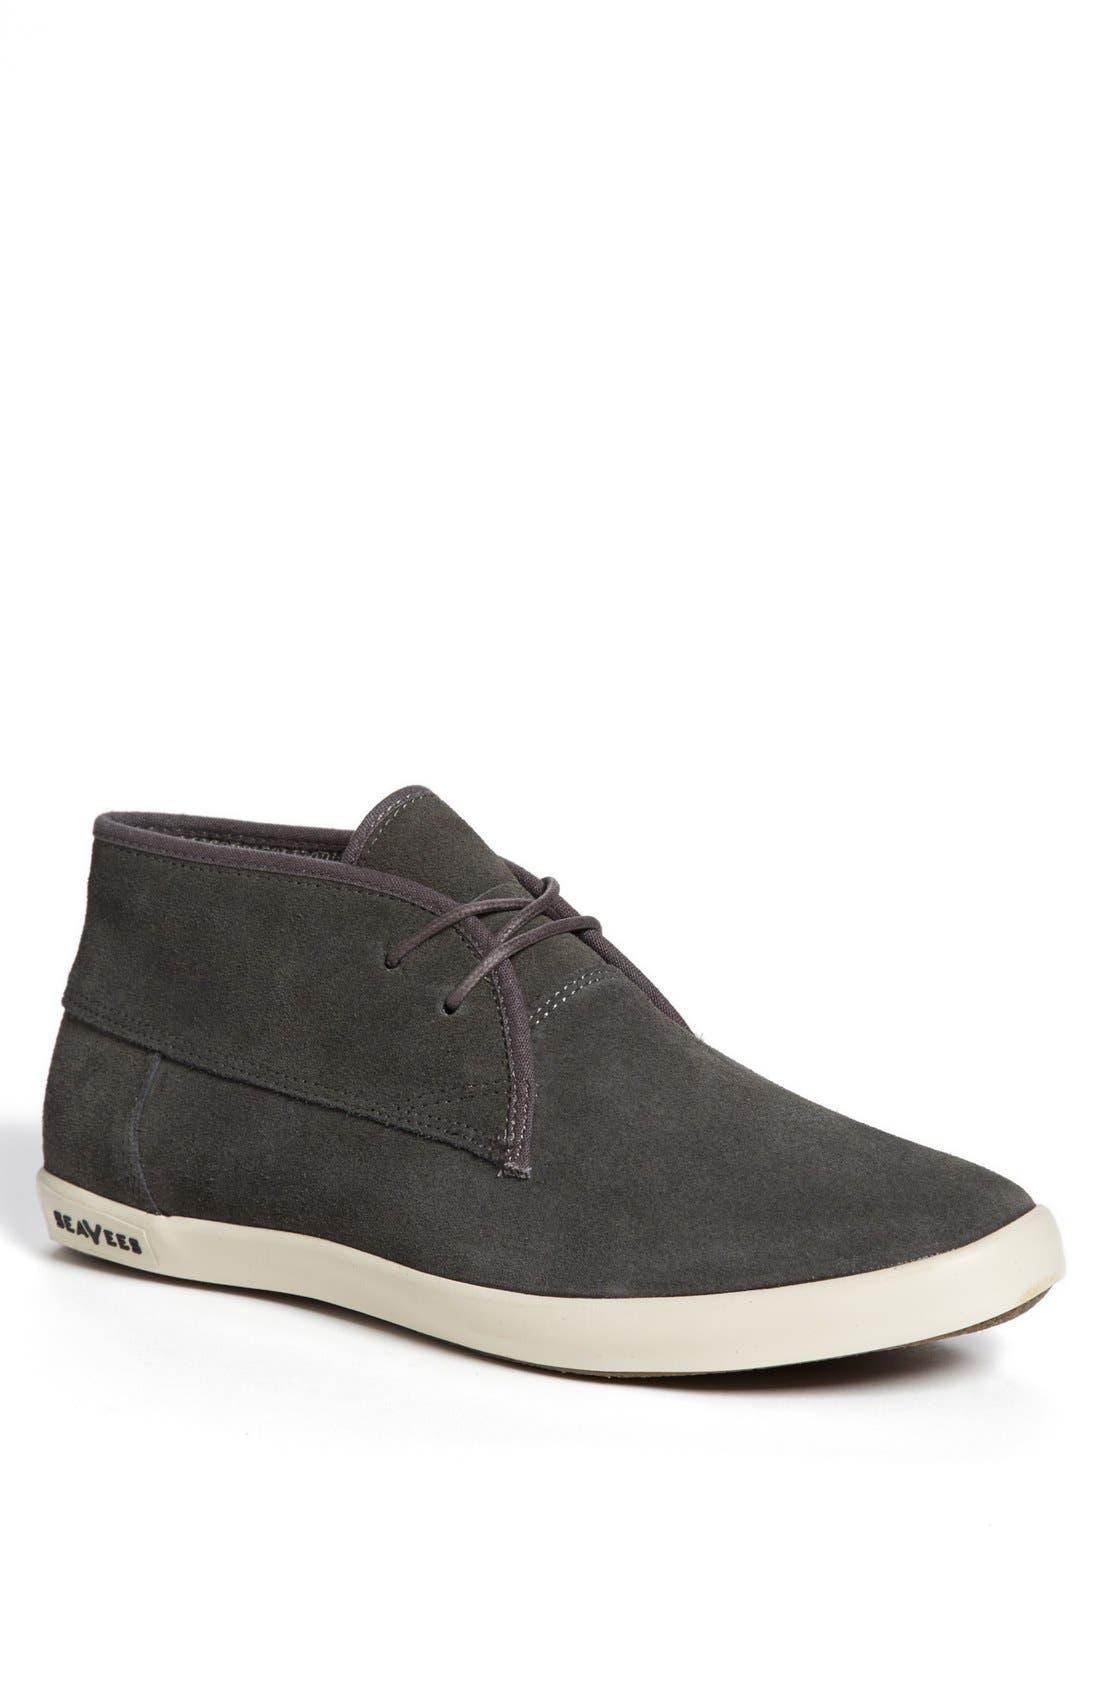 Main Image - SeaVees '04/60 Two-Eye Floater' Chukka Boot